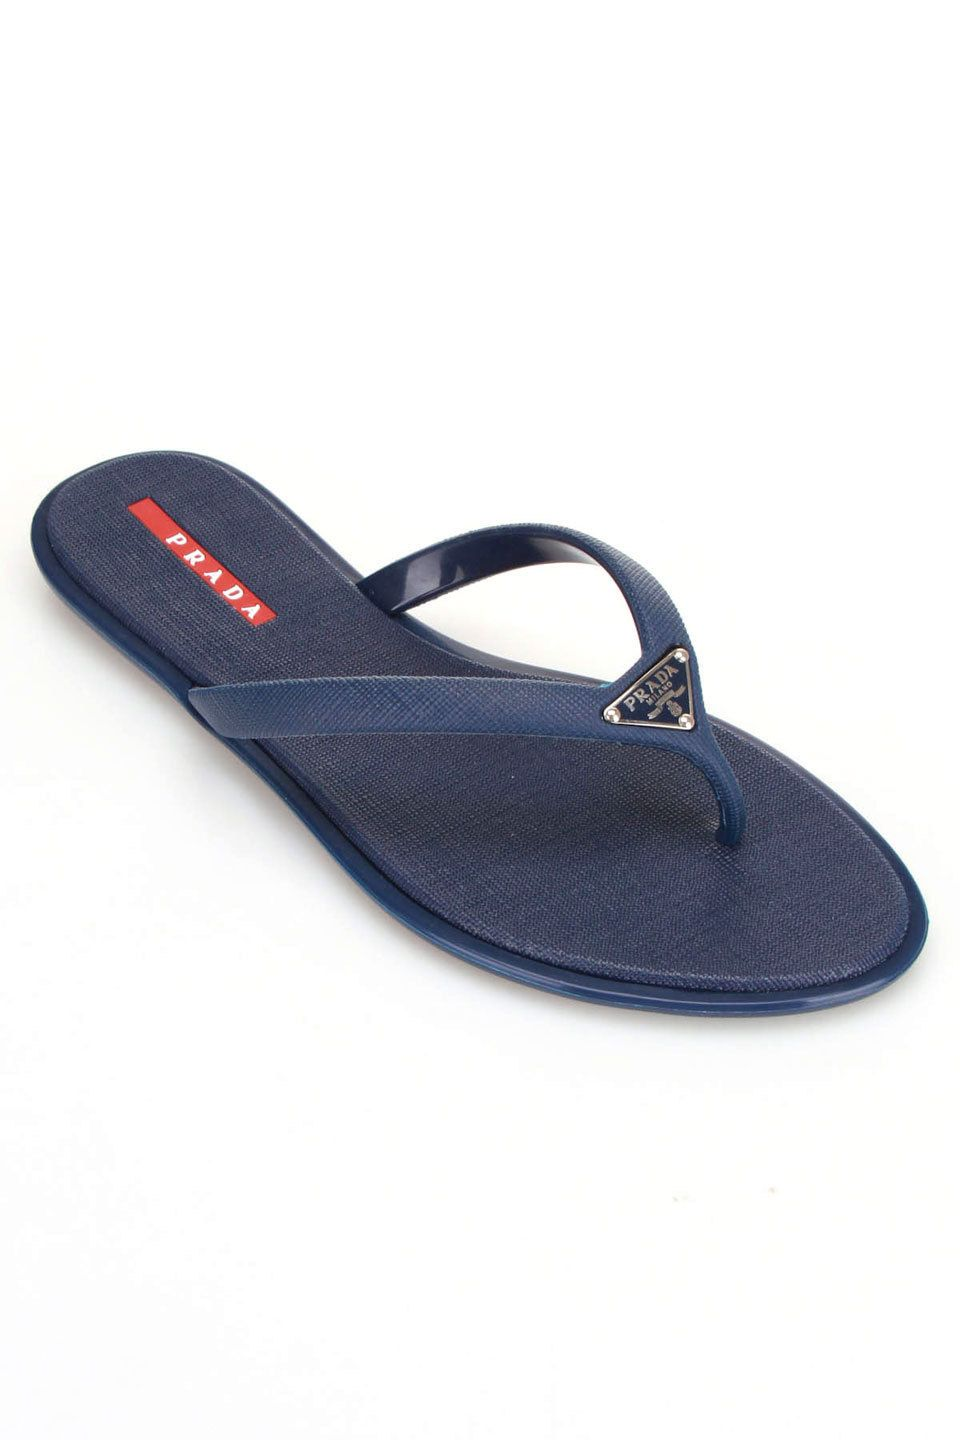 f0001629bb480 PRADA Saffiano Calzature Thong Sandal In Light Blue  229.99 I would not pay  this price for flip-flops even for Prada but these sandals are more my  speed.